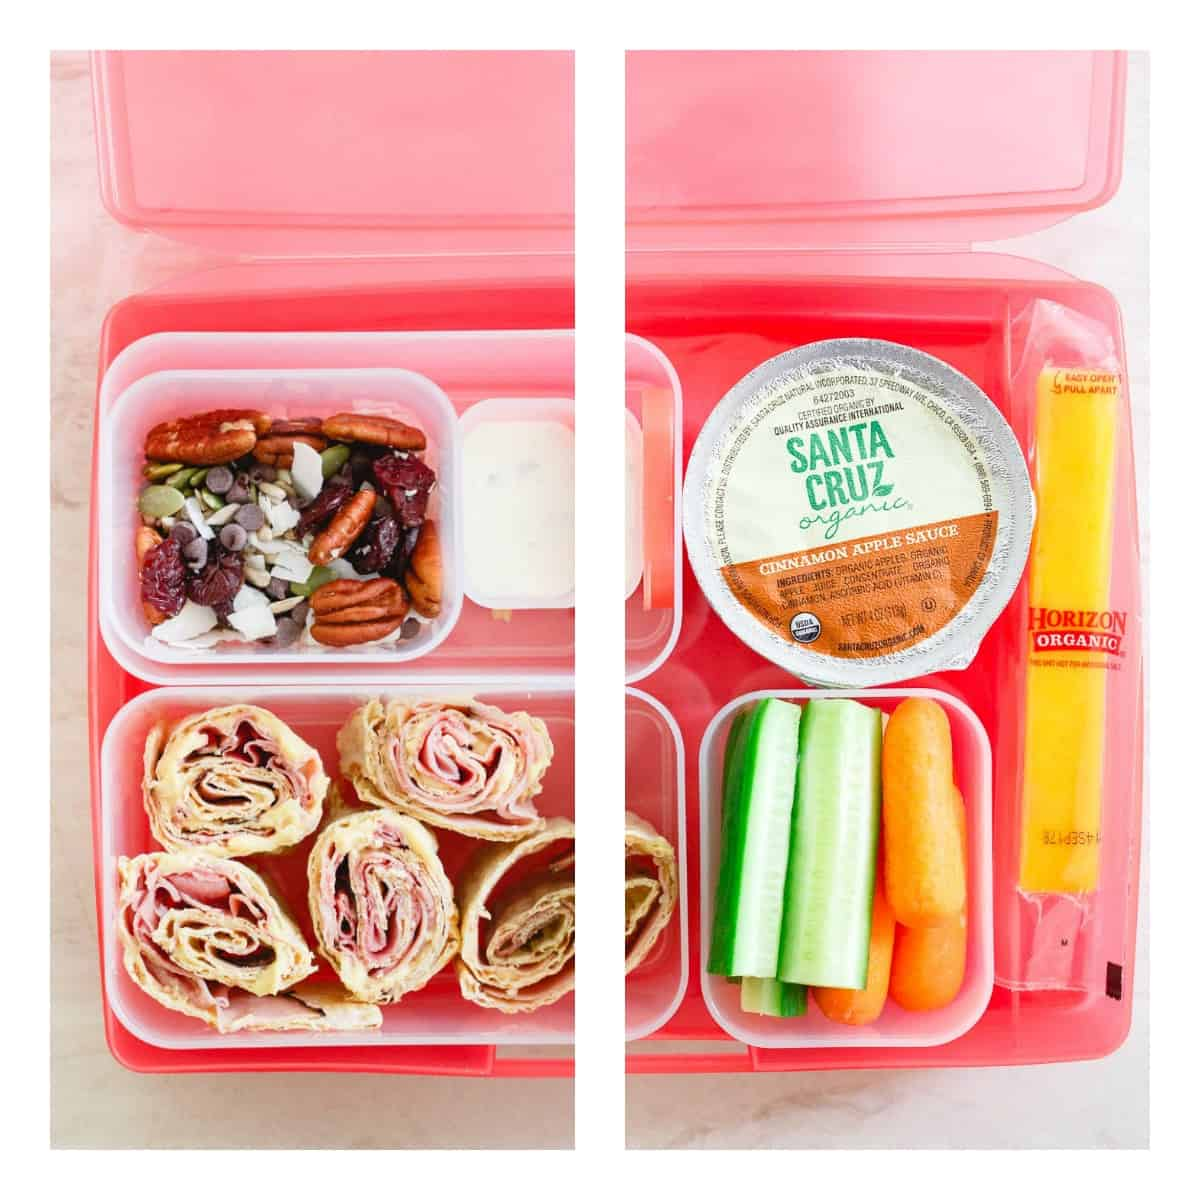 Send your kids to school with these simple, easy and healthy lunchbox ideas.